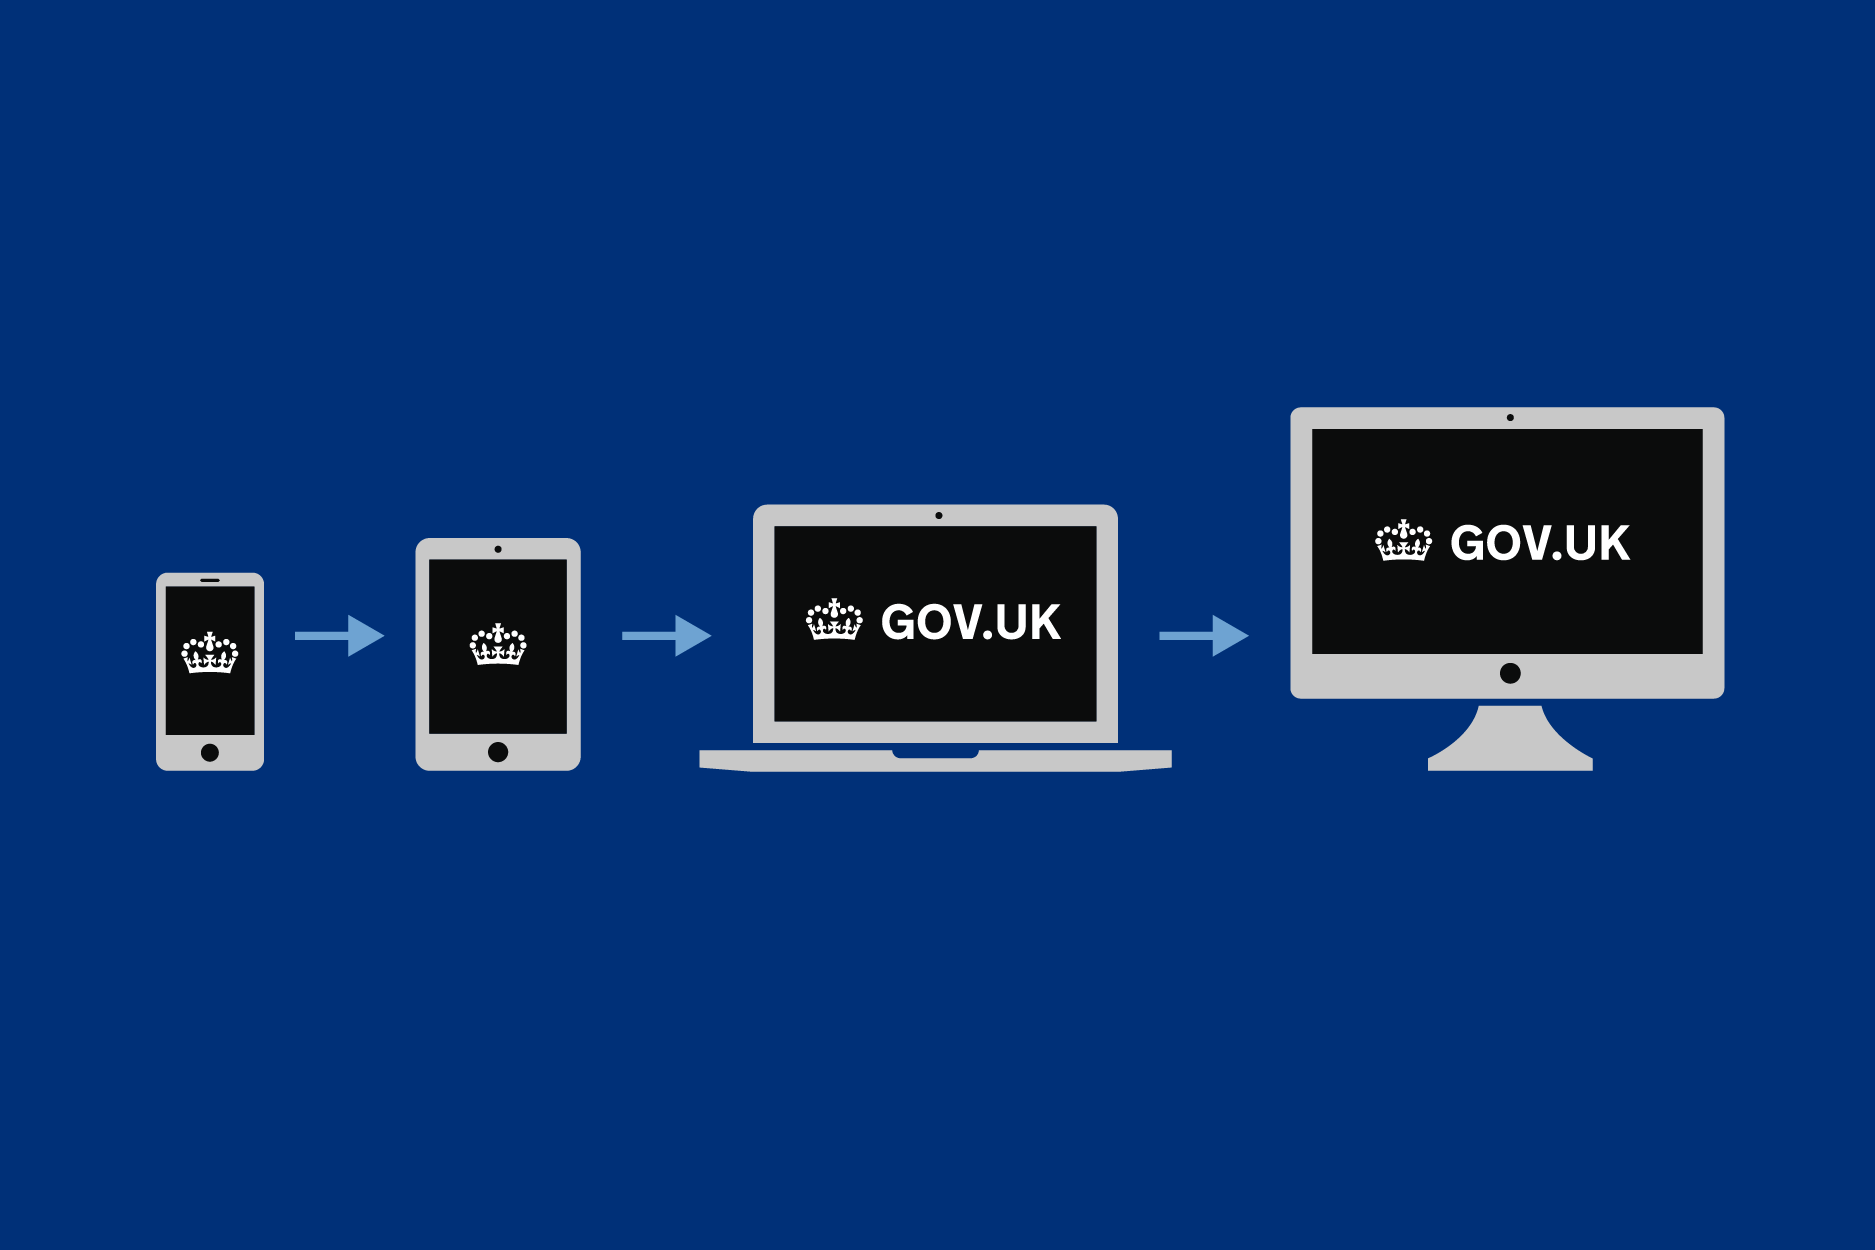 Improving the mobile experience on GOV.UK